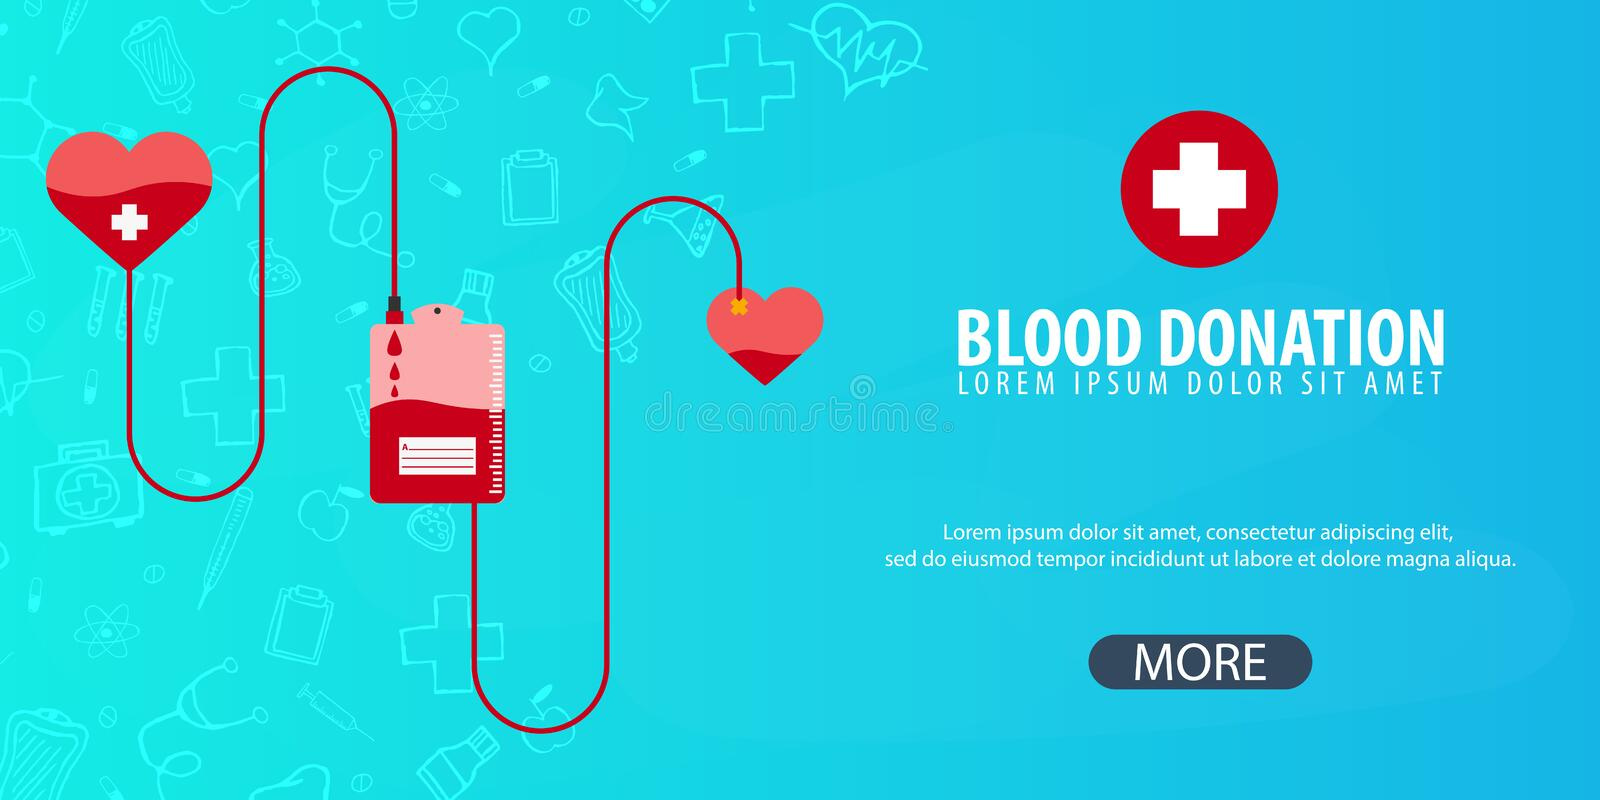 Blood donation. Medical background. Health care. Vector medicine illustration. vector illustration